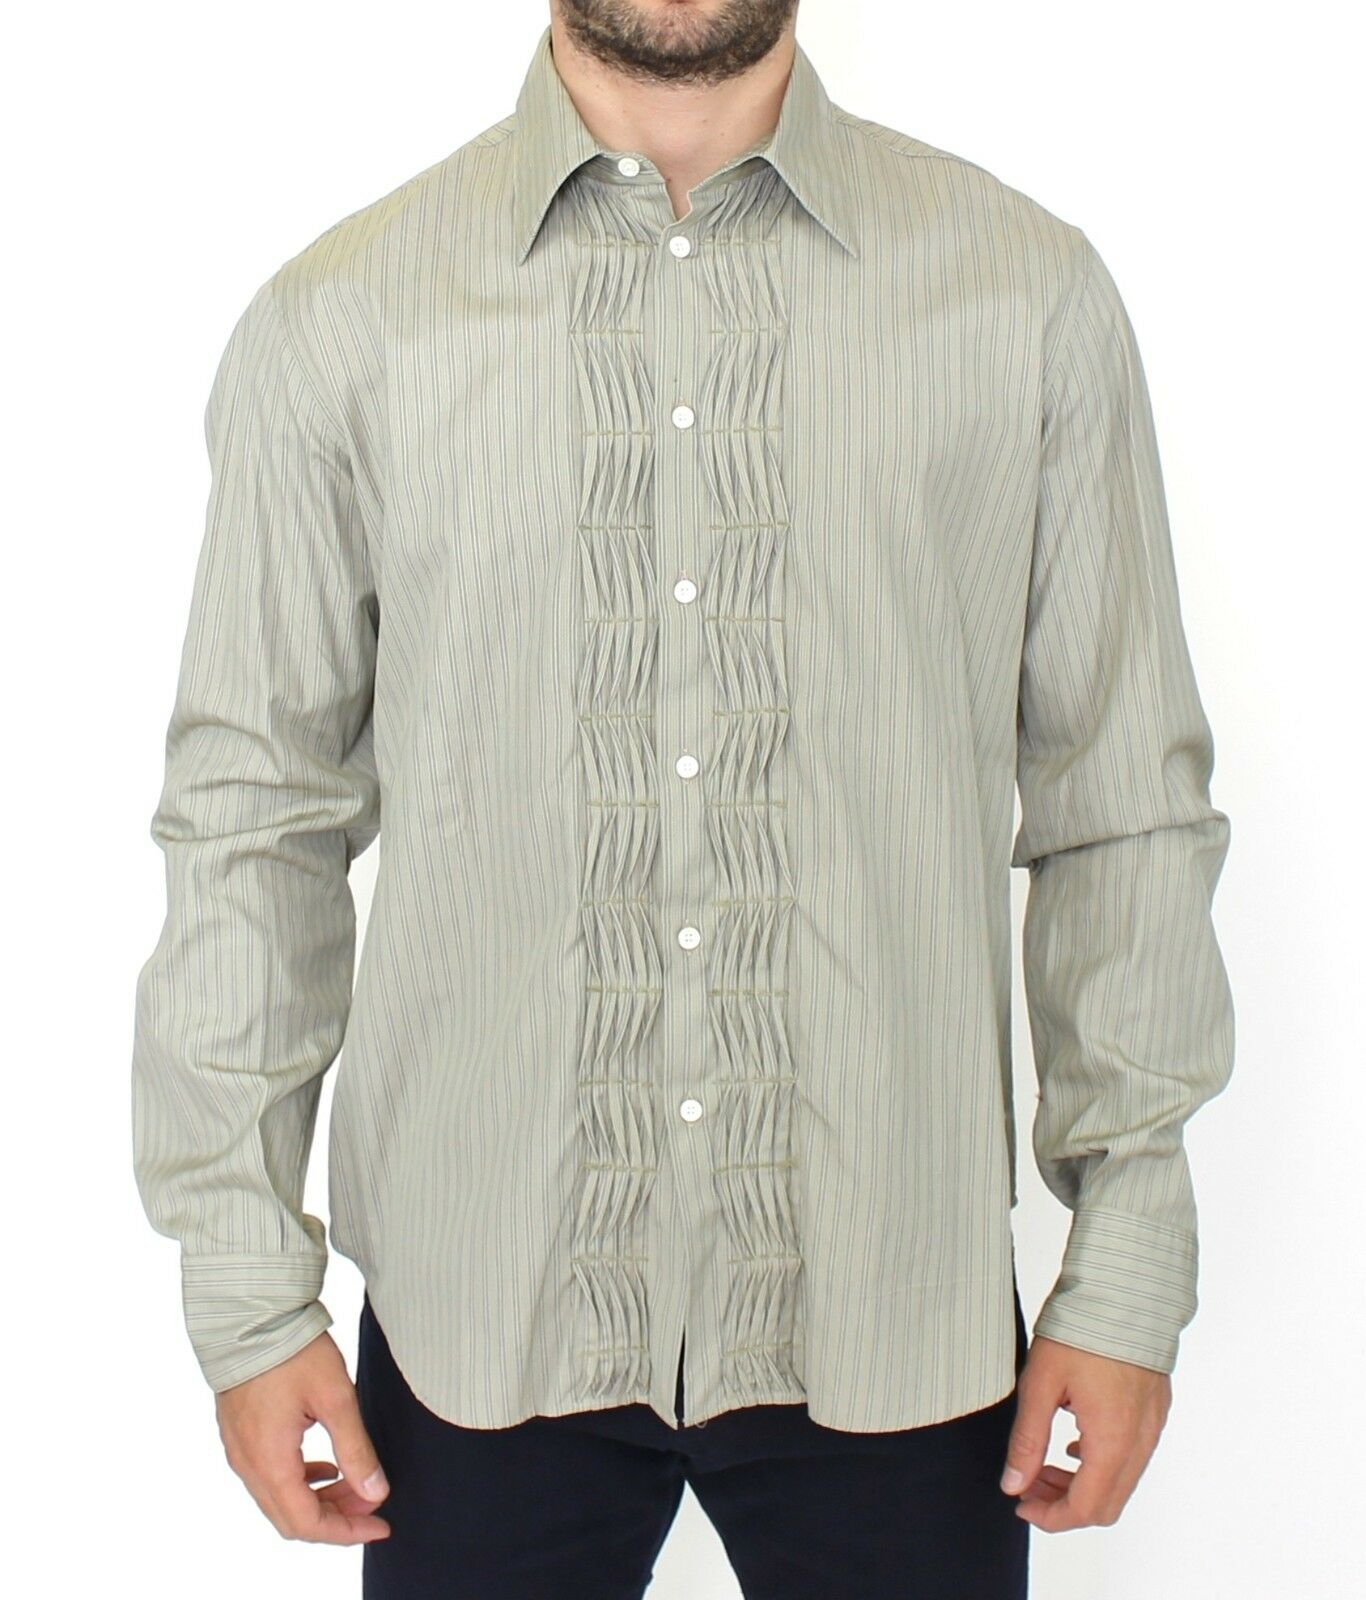 NWT  ERMANNO SCERVINO Green Striped Cotton Casual Long Sleeve Shirt IT50   L